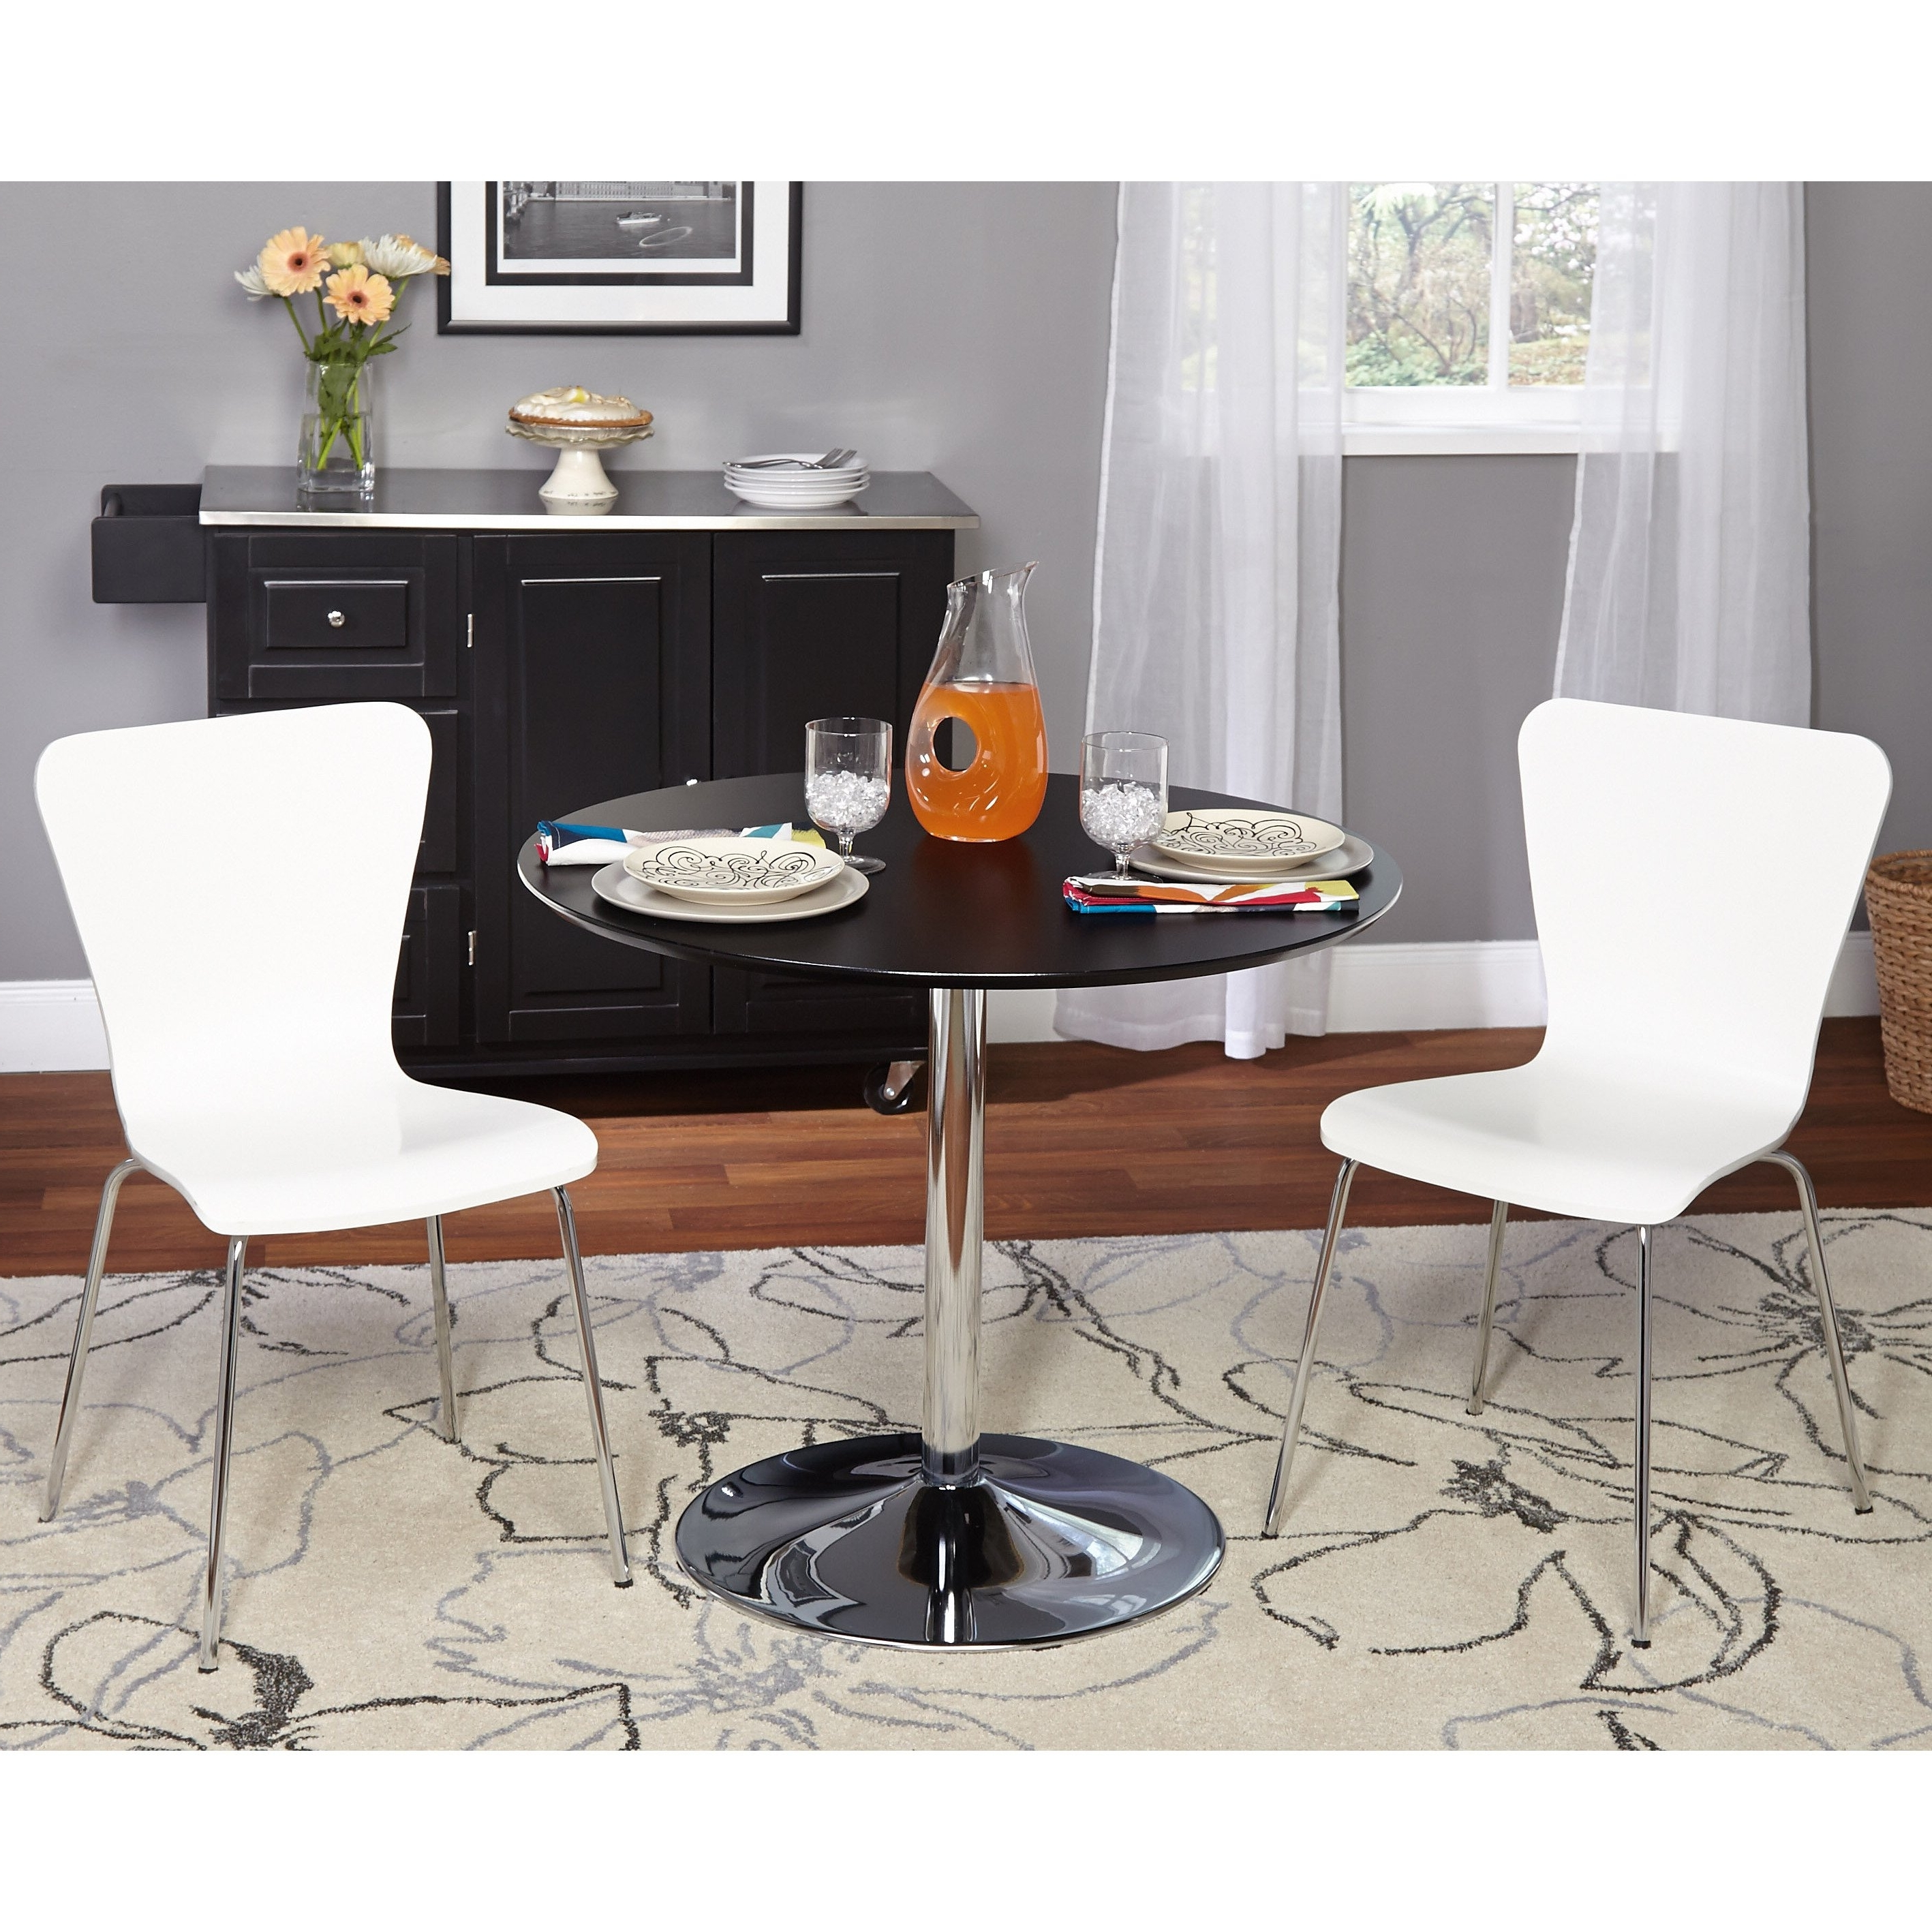 Pisa Dining Tables With Regard To Trendy Shop Simple Living 3 Piece Pisa Dining Set – Free Shipping Today (View 14 of 25)